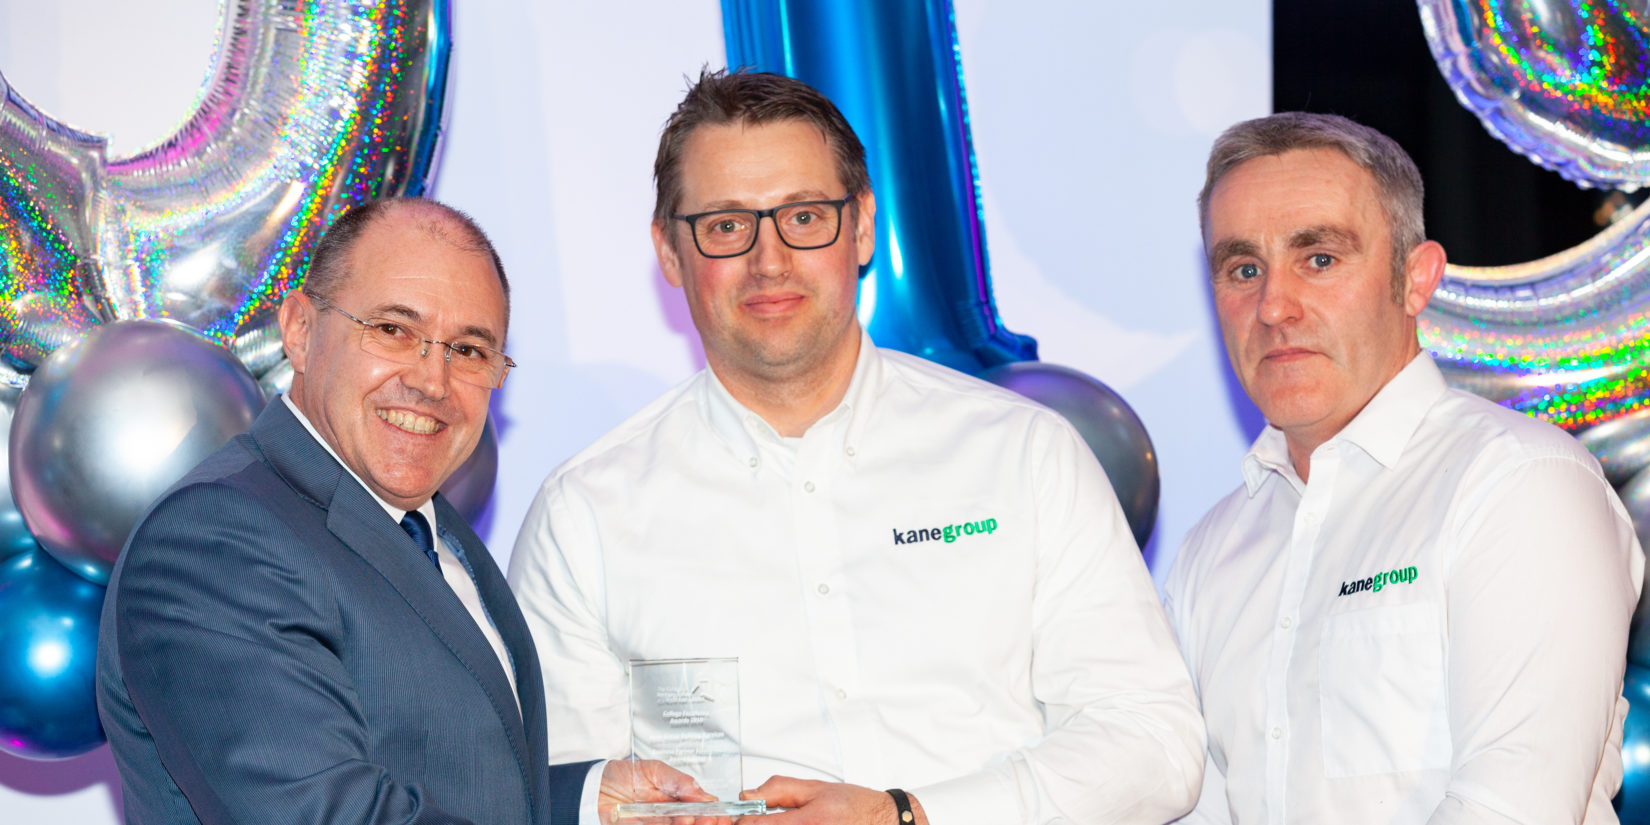 Pictured L-R: CONEL Principal Kurt Hintz presenting the award to Craig Smith and John McMullan from Kane.